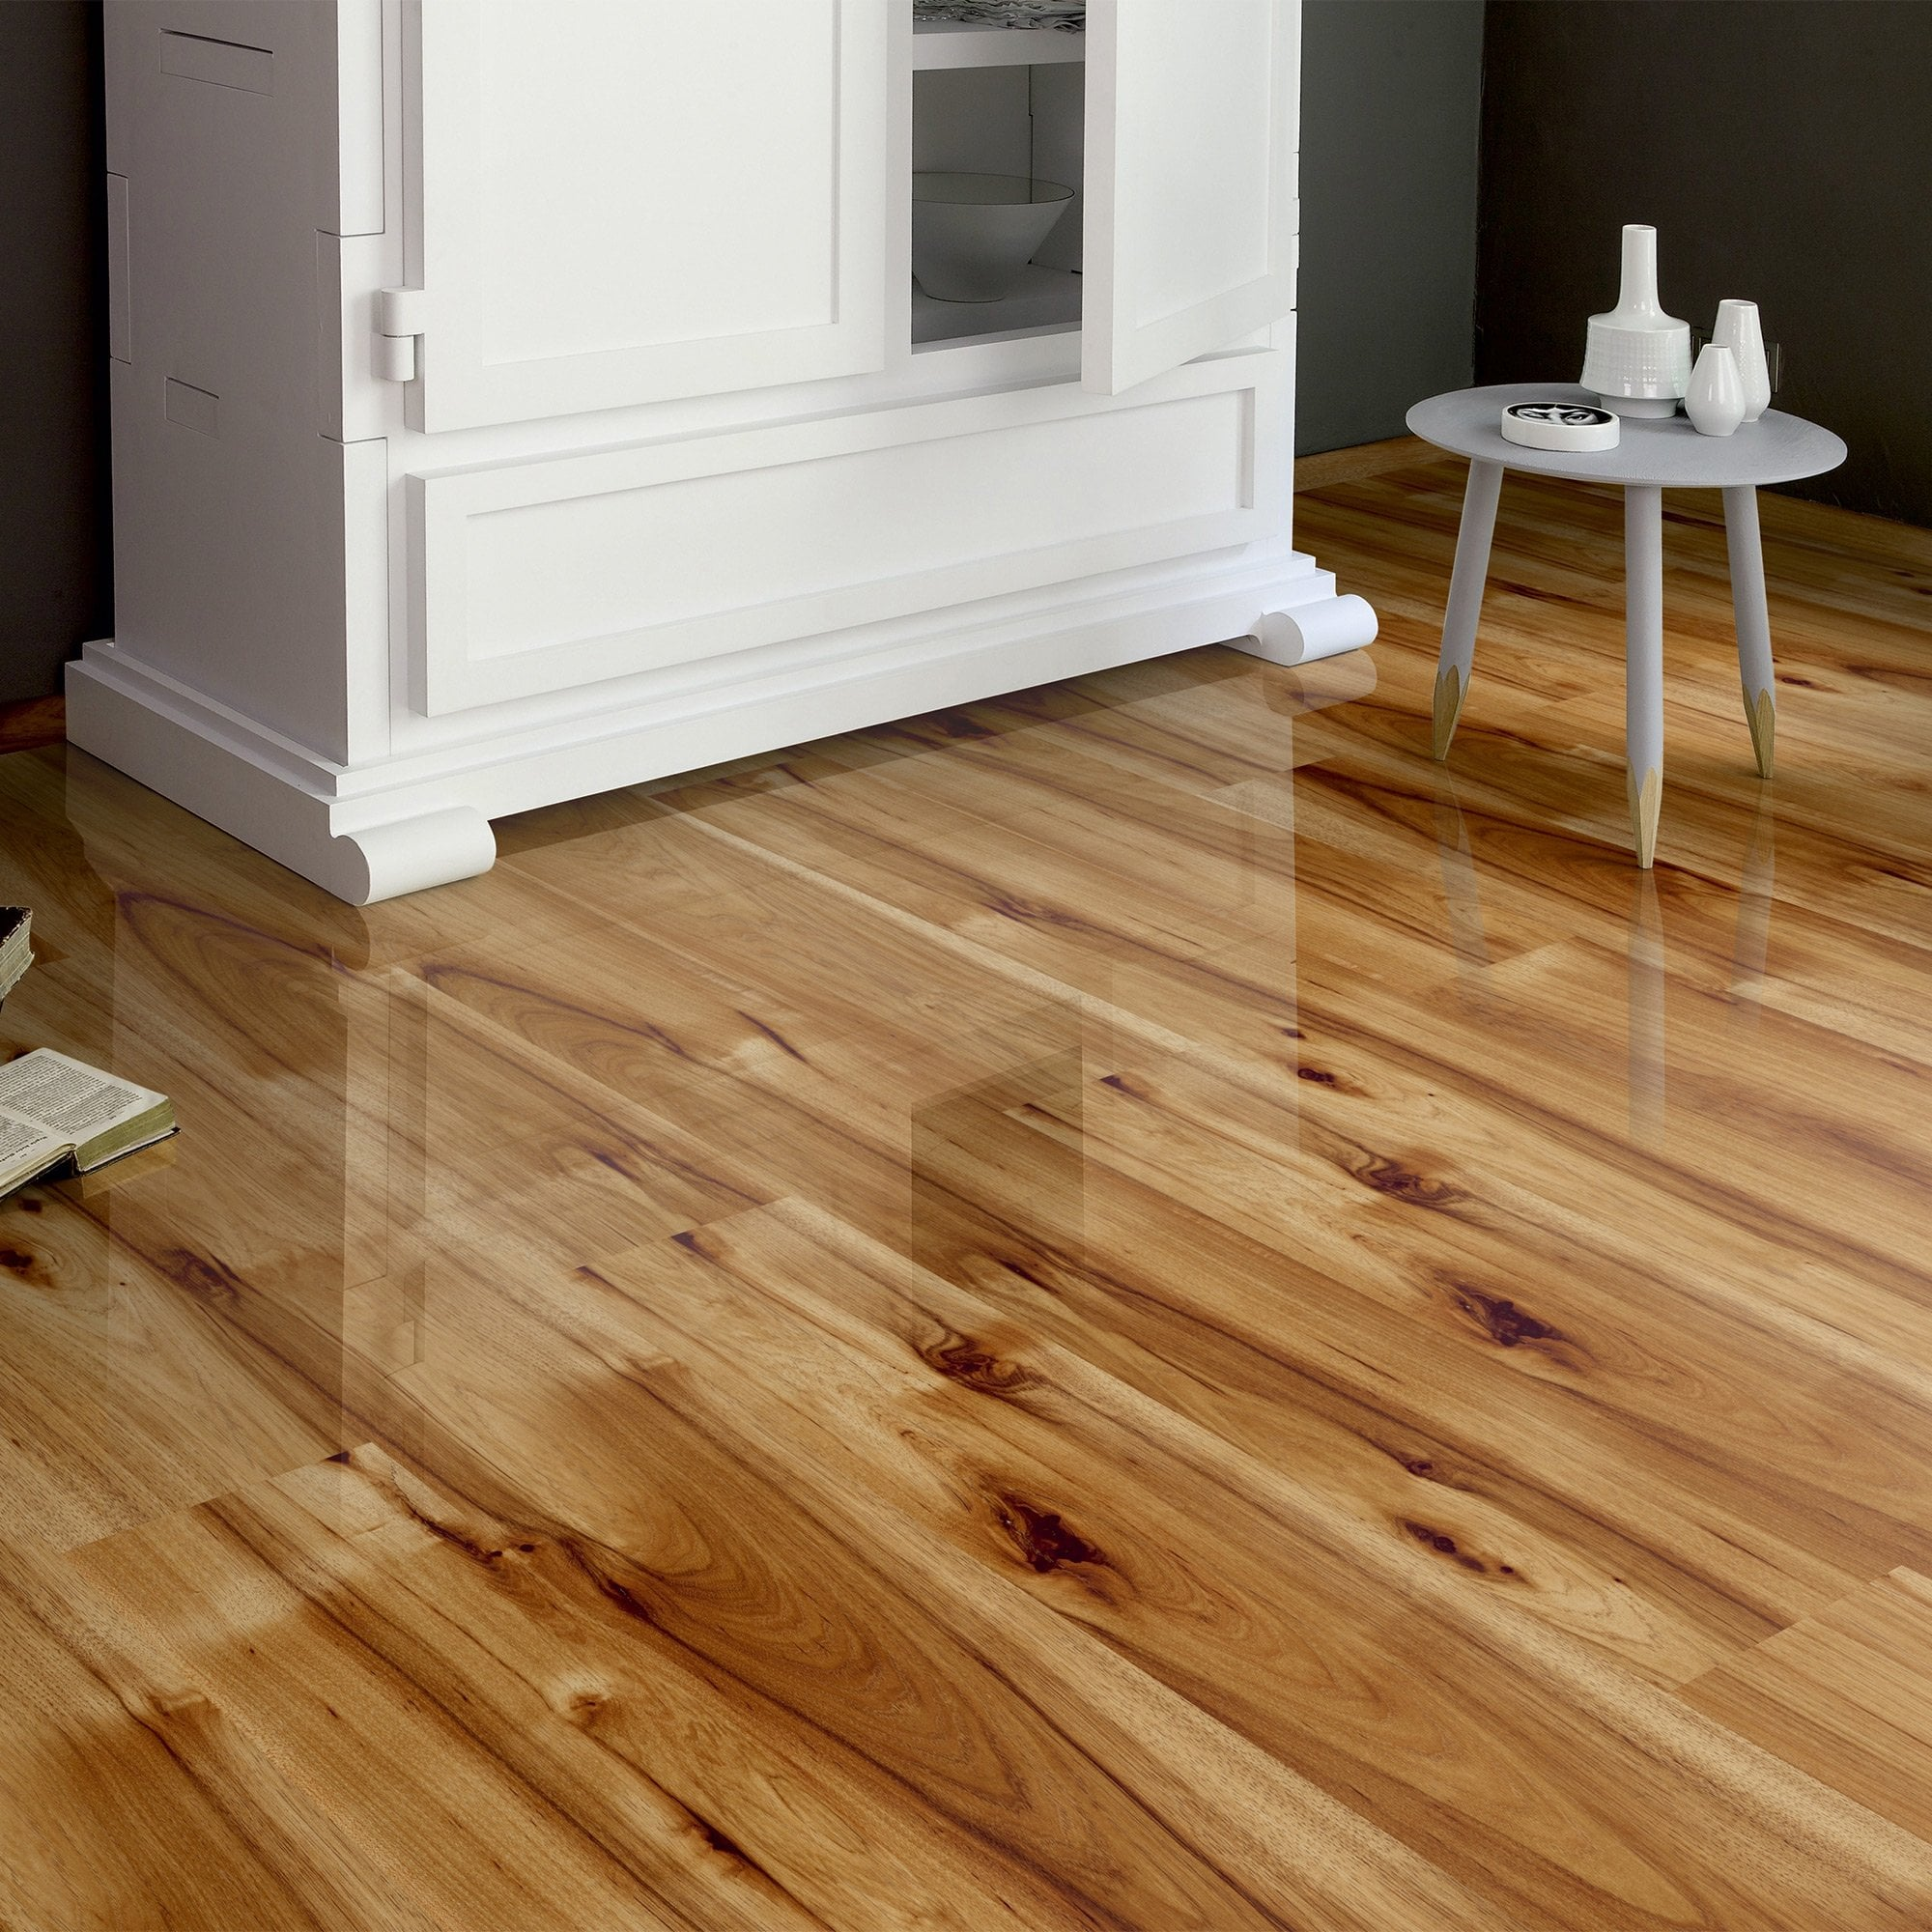 Kaindl Easy Touch 8mm Hickory Bravo, Laminate Flooring Deals